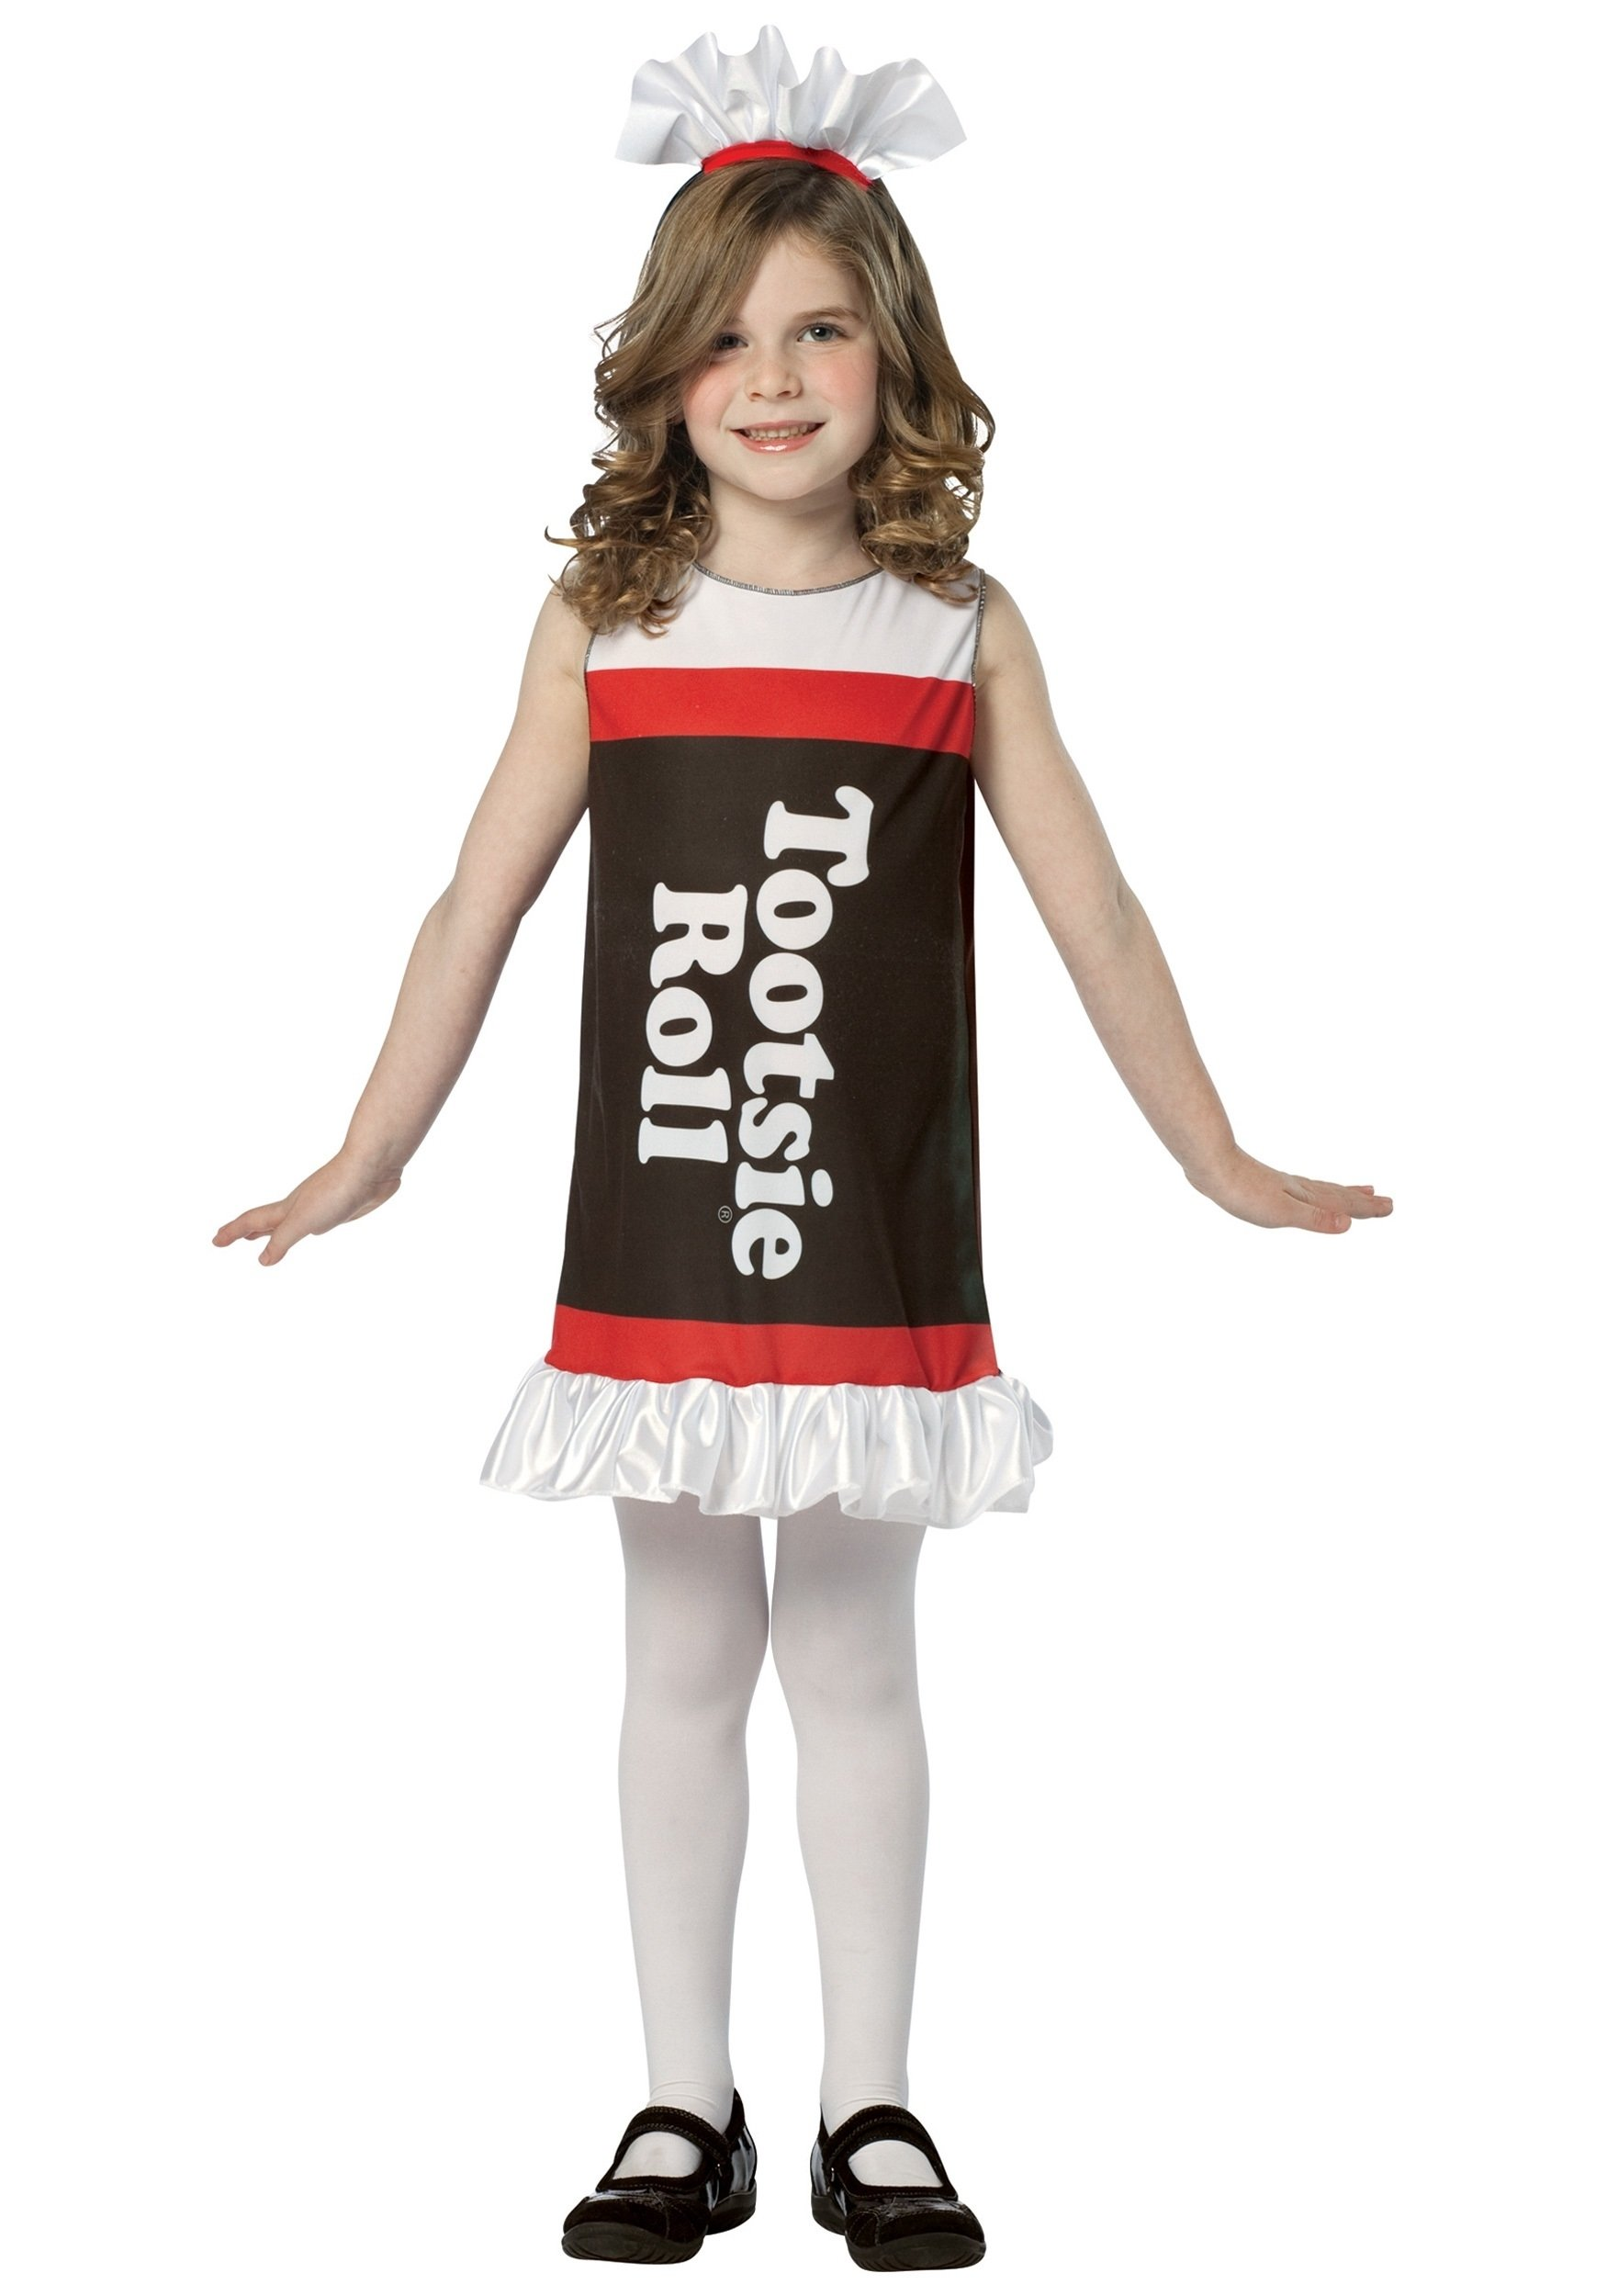 10 Nice Ideas For Halloween Costumes For Girls girls tootsie roll dress 2 2020